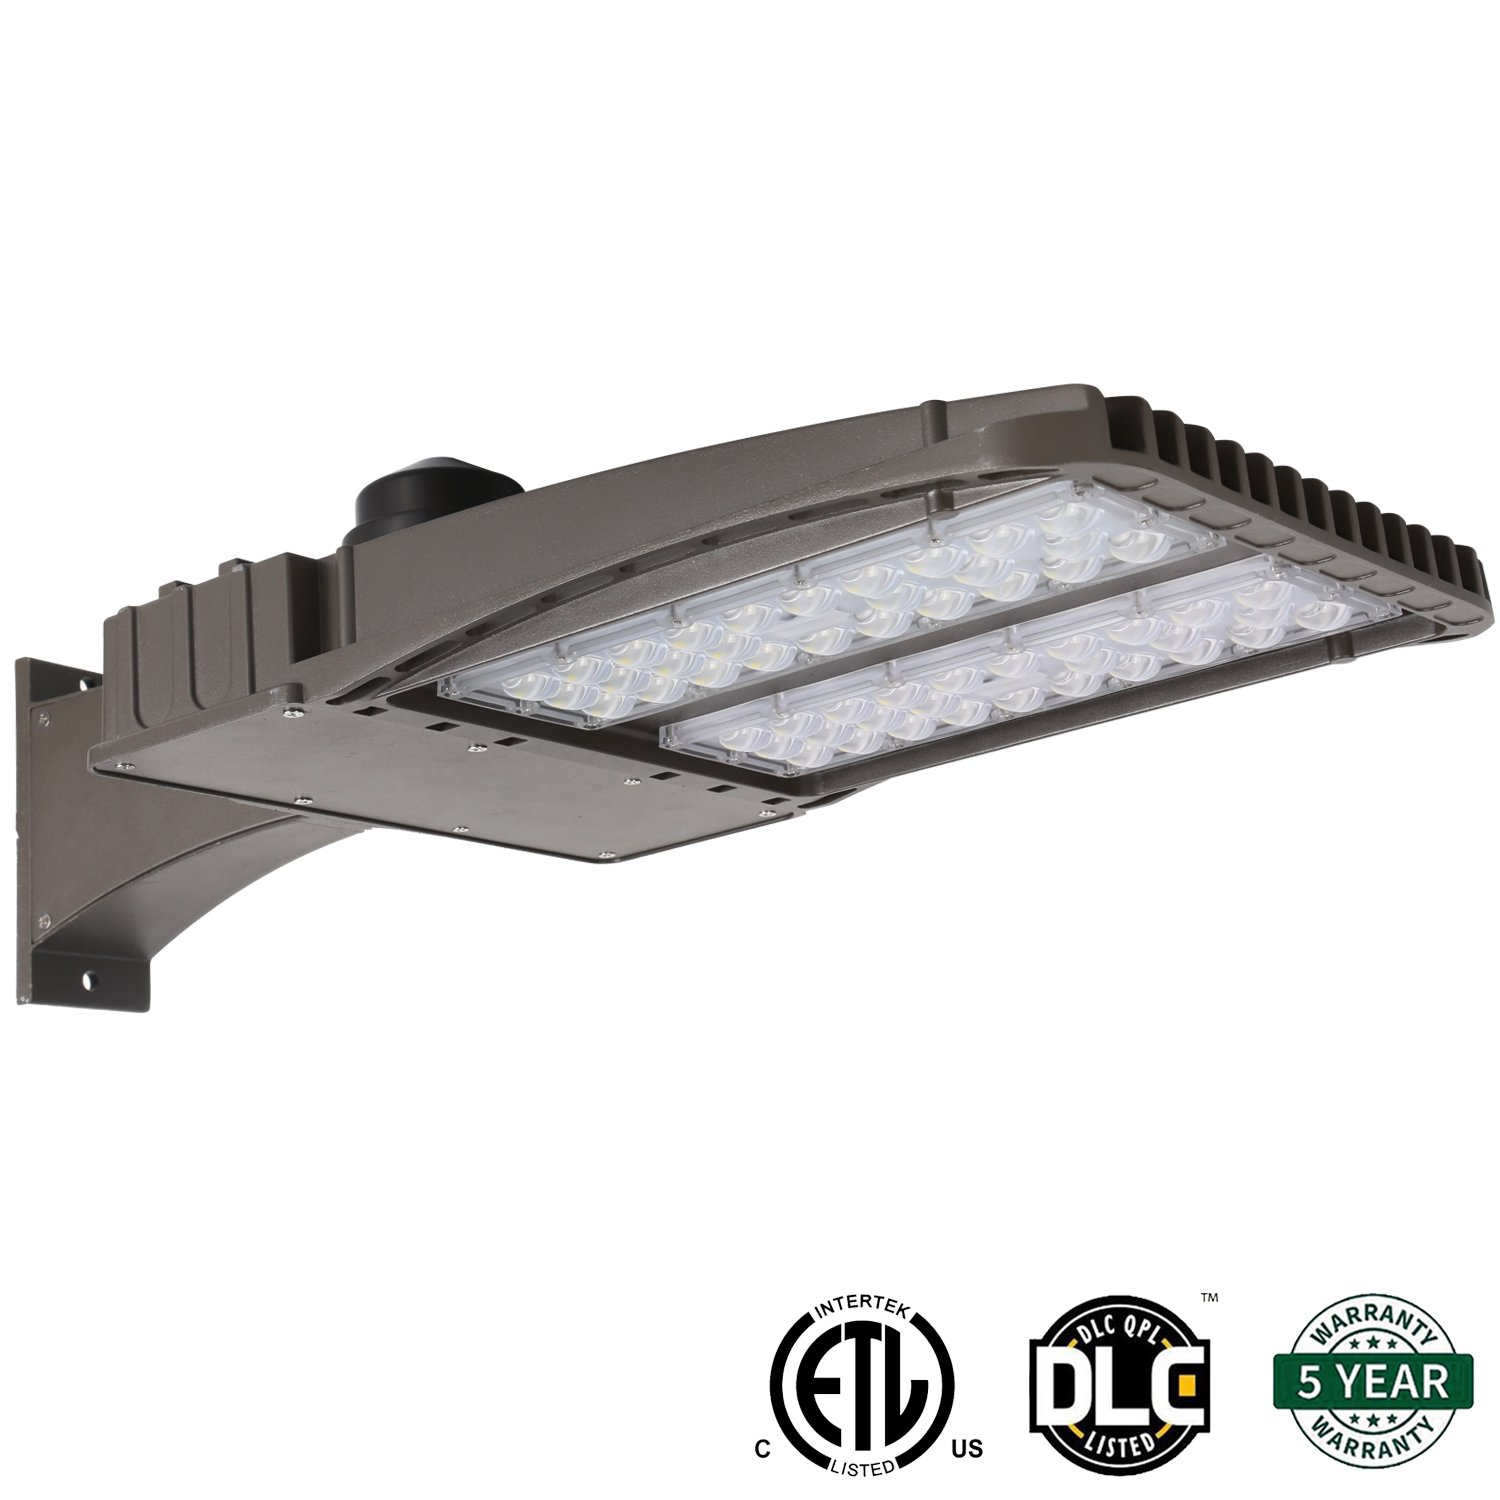 Hykolity 150W LED Shoebox Outdoor Commerical Pole Light Weatherpoof Area Parking Lot Security Lighting Fixture [450W Equivalent] Super Bright 18700lm 5700K Arm Mounted DLC and ETL Listed